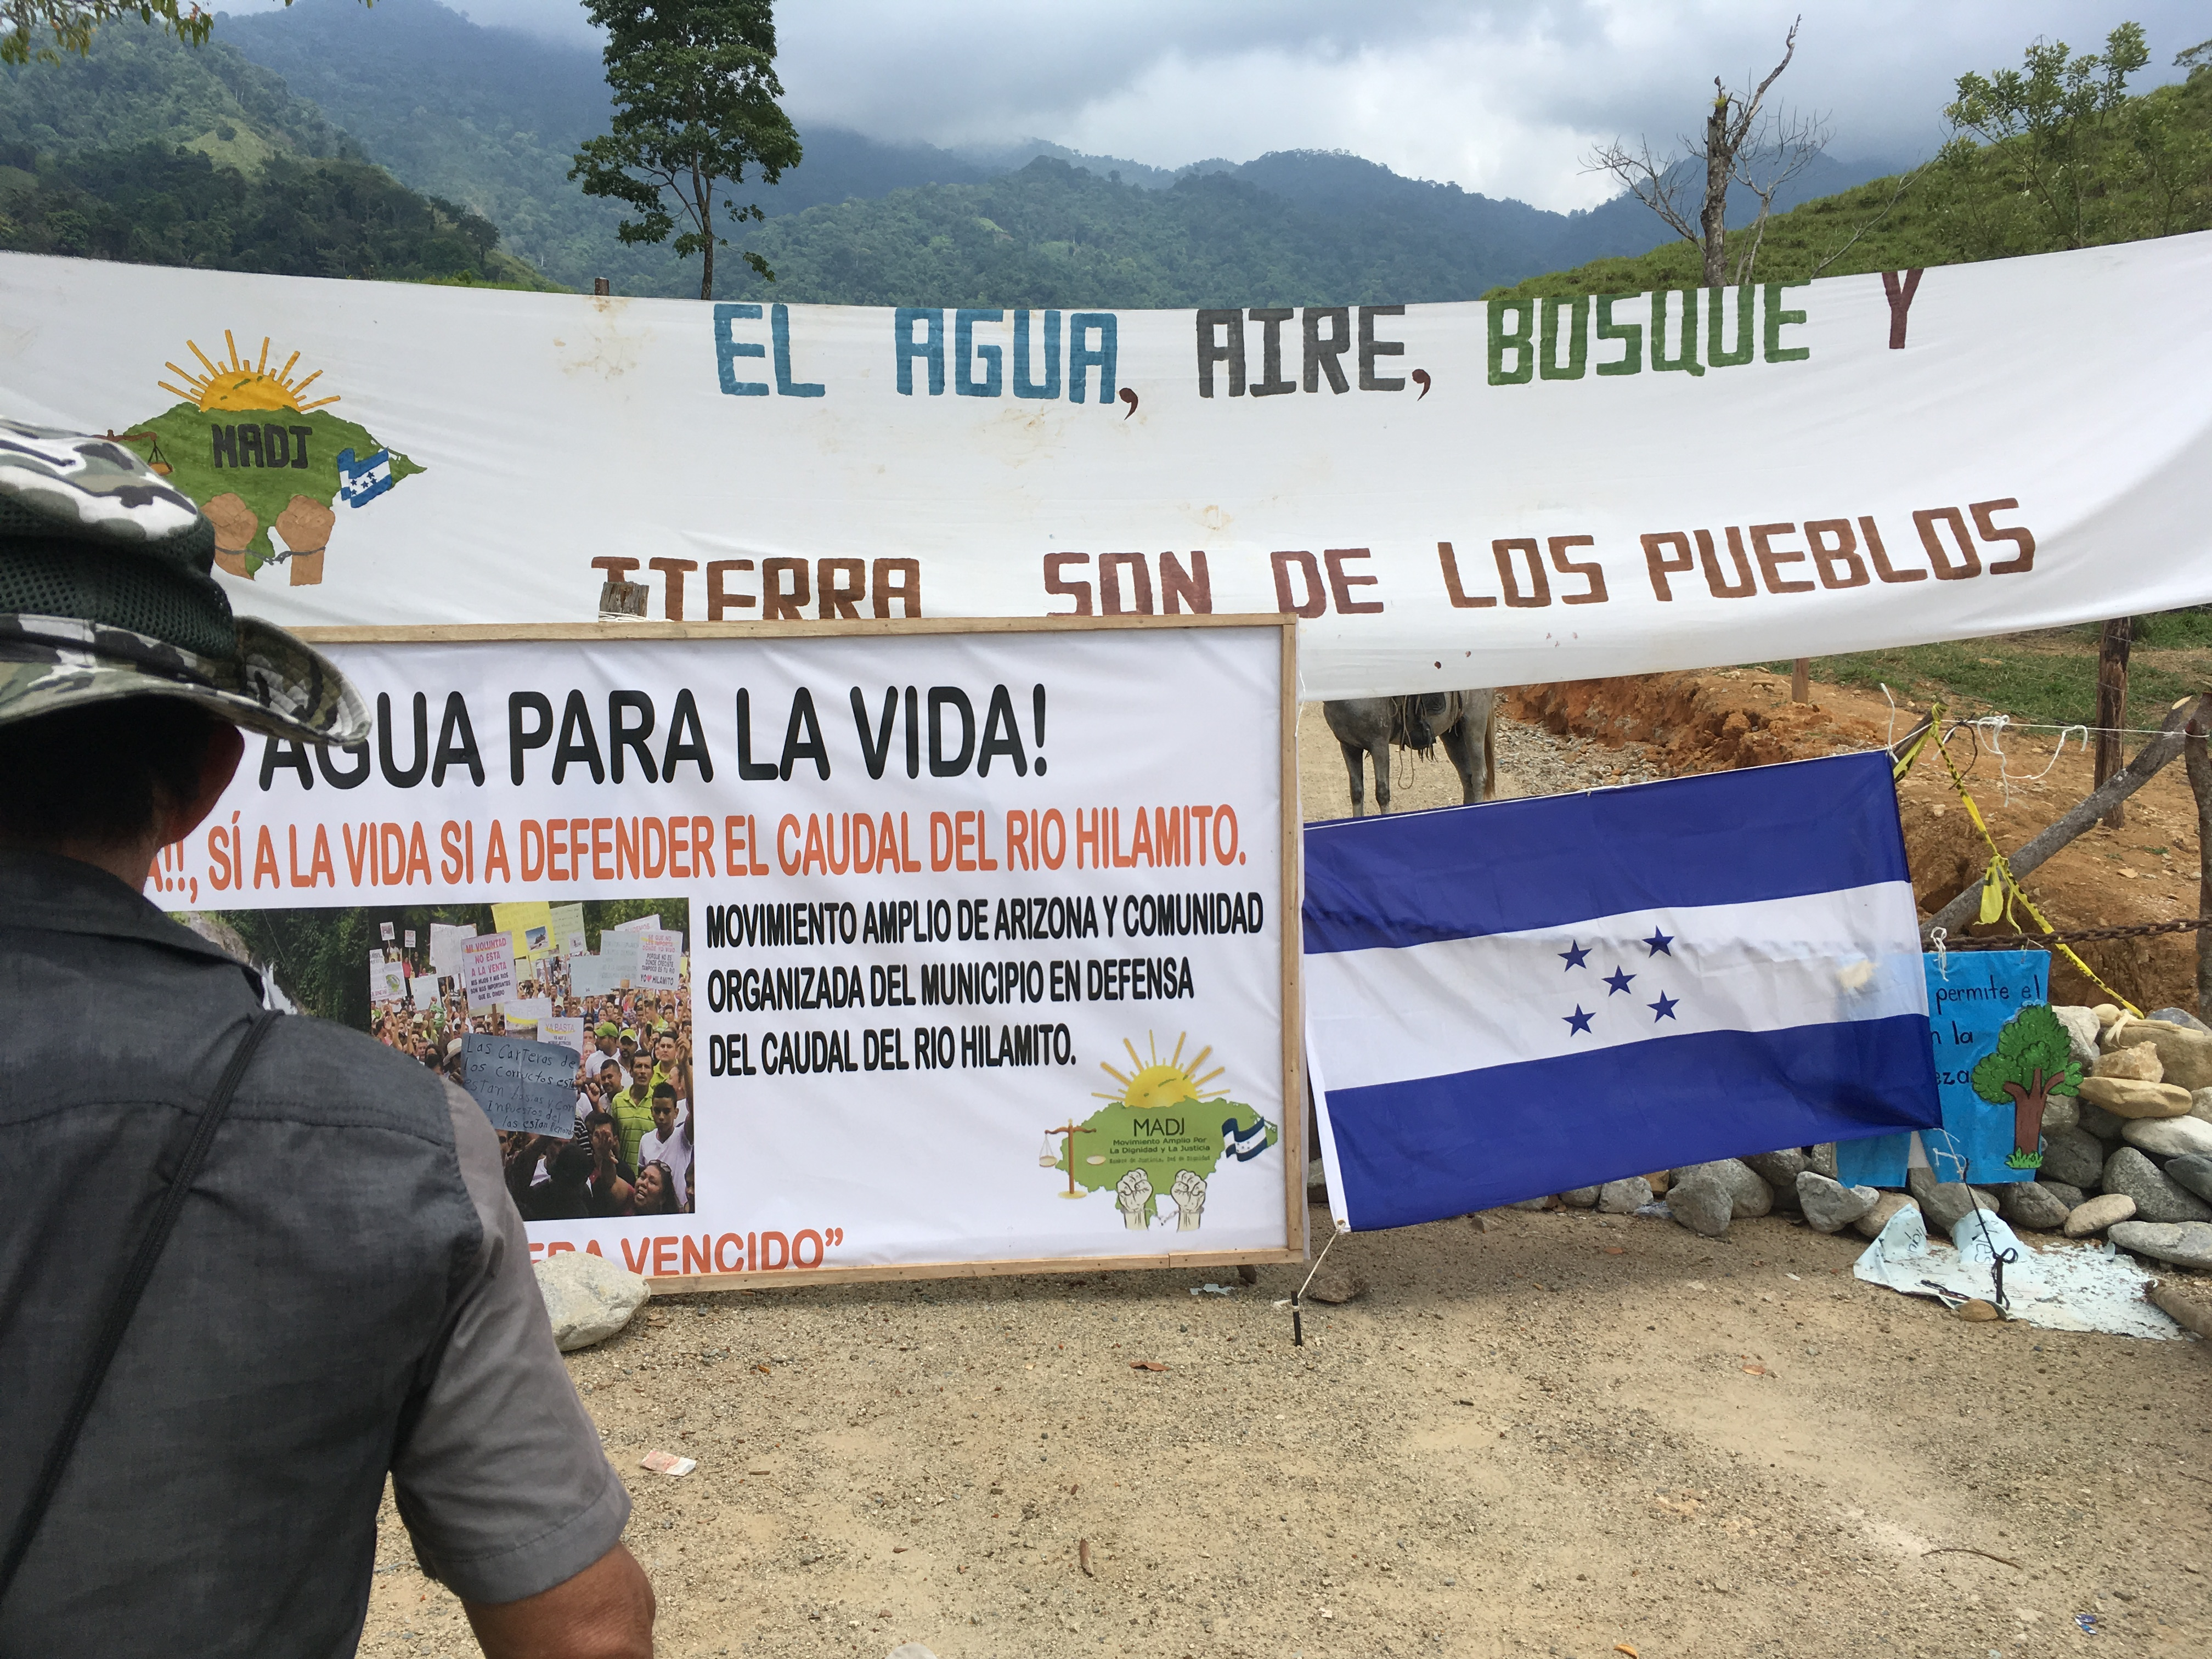 Picture is of a banner, sign, and Honduran flag that cover barbed wire and make up a barricade